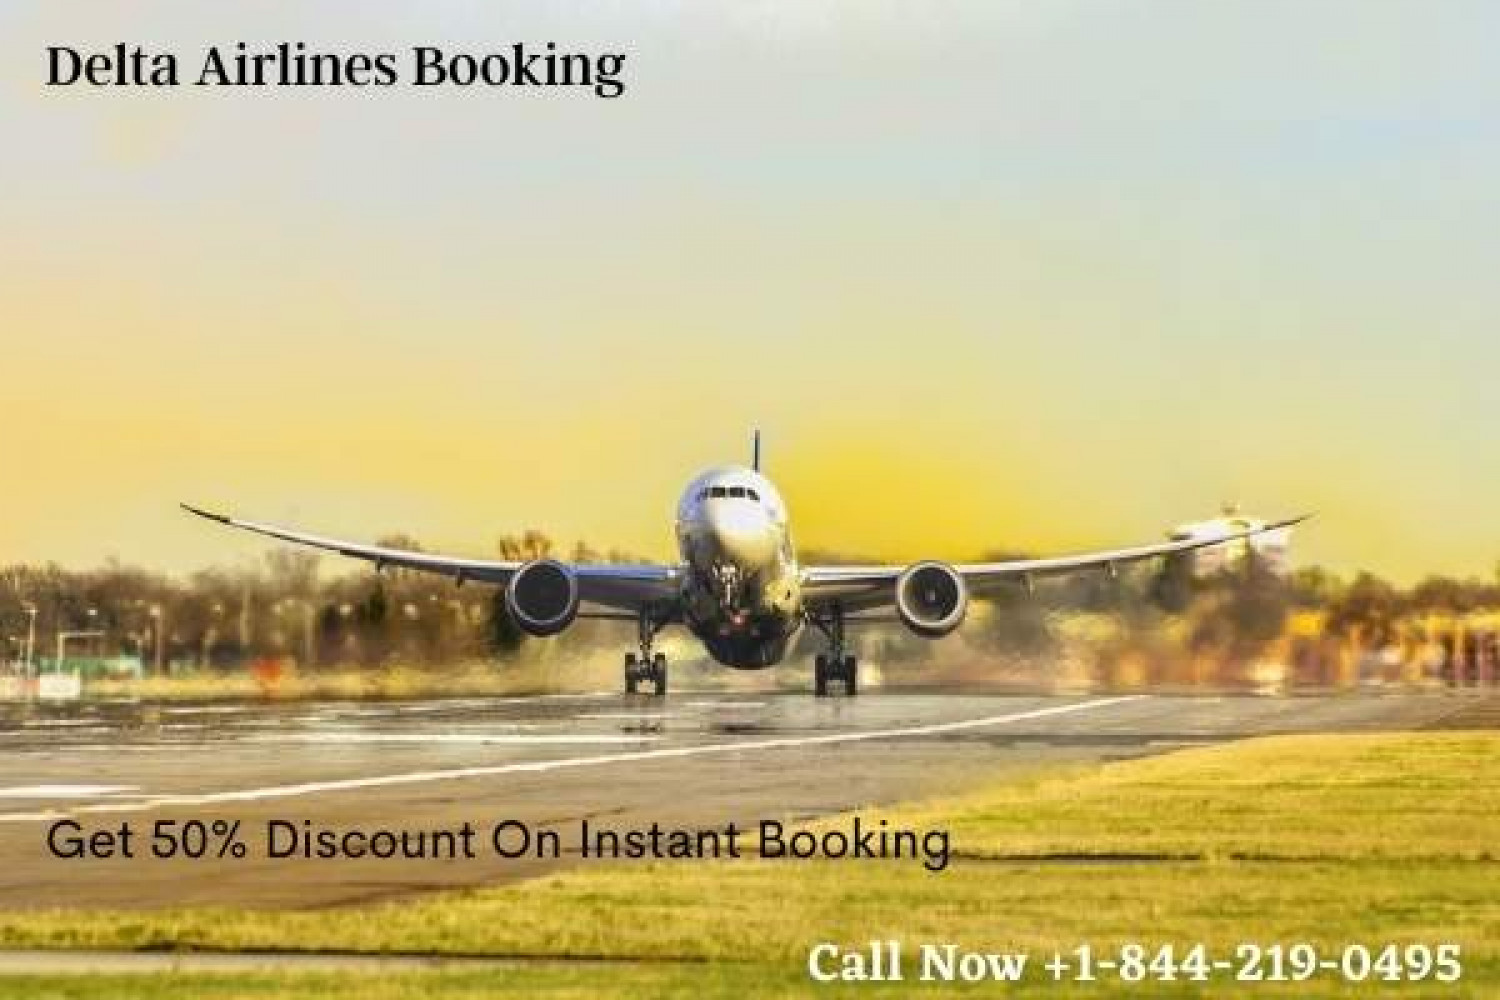 Get 50% OFF On Delta Airlines Booking Call +1-844-219-0495 Infographic